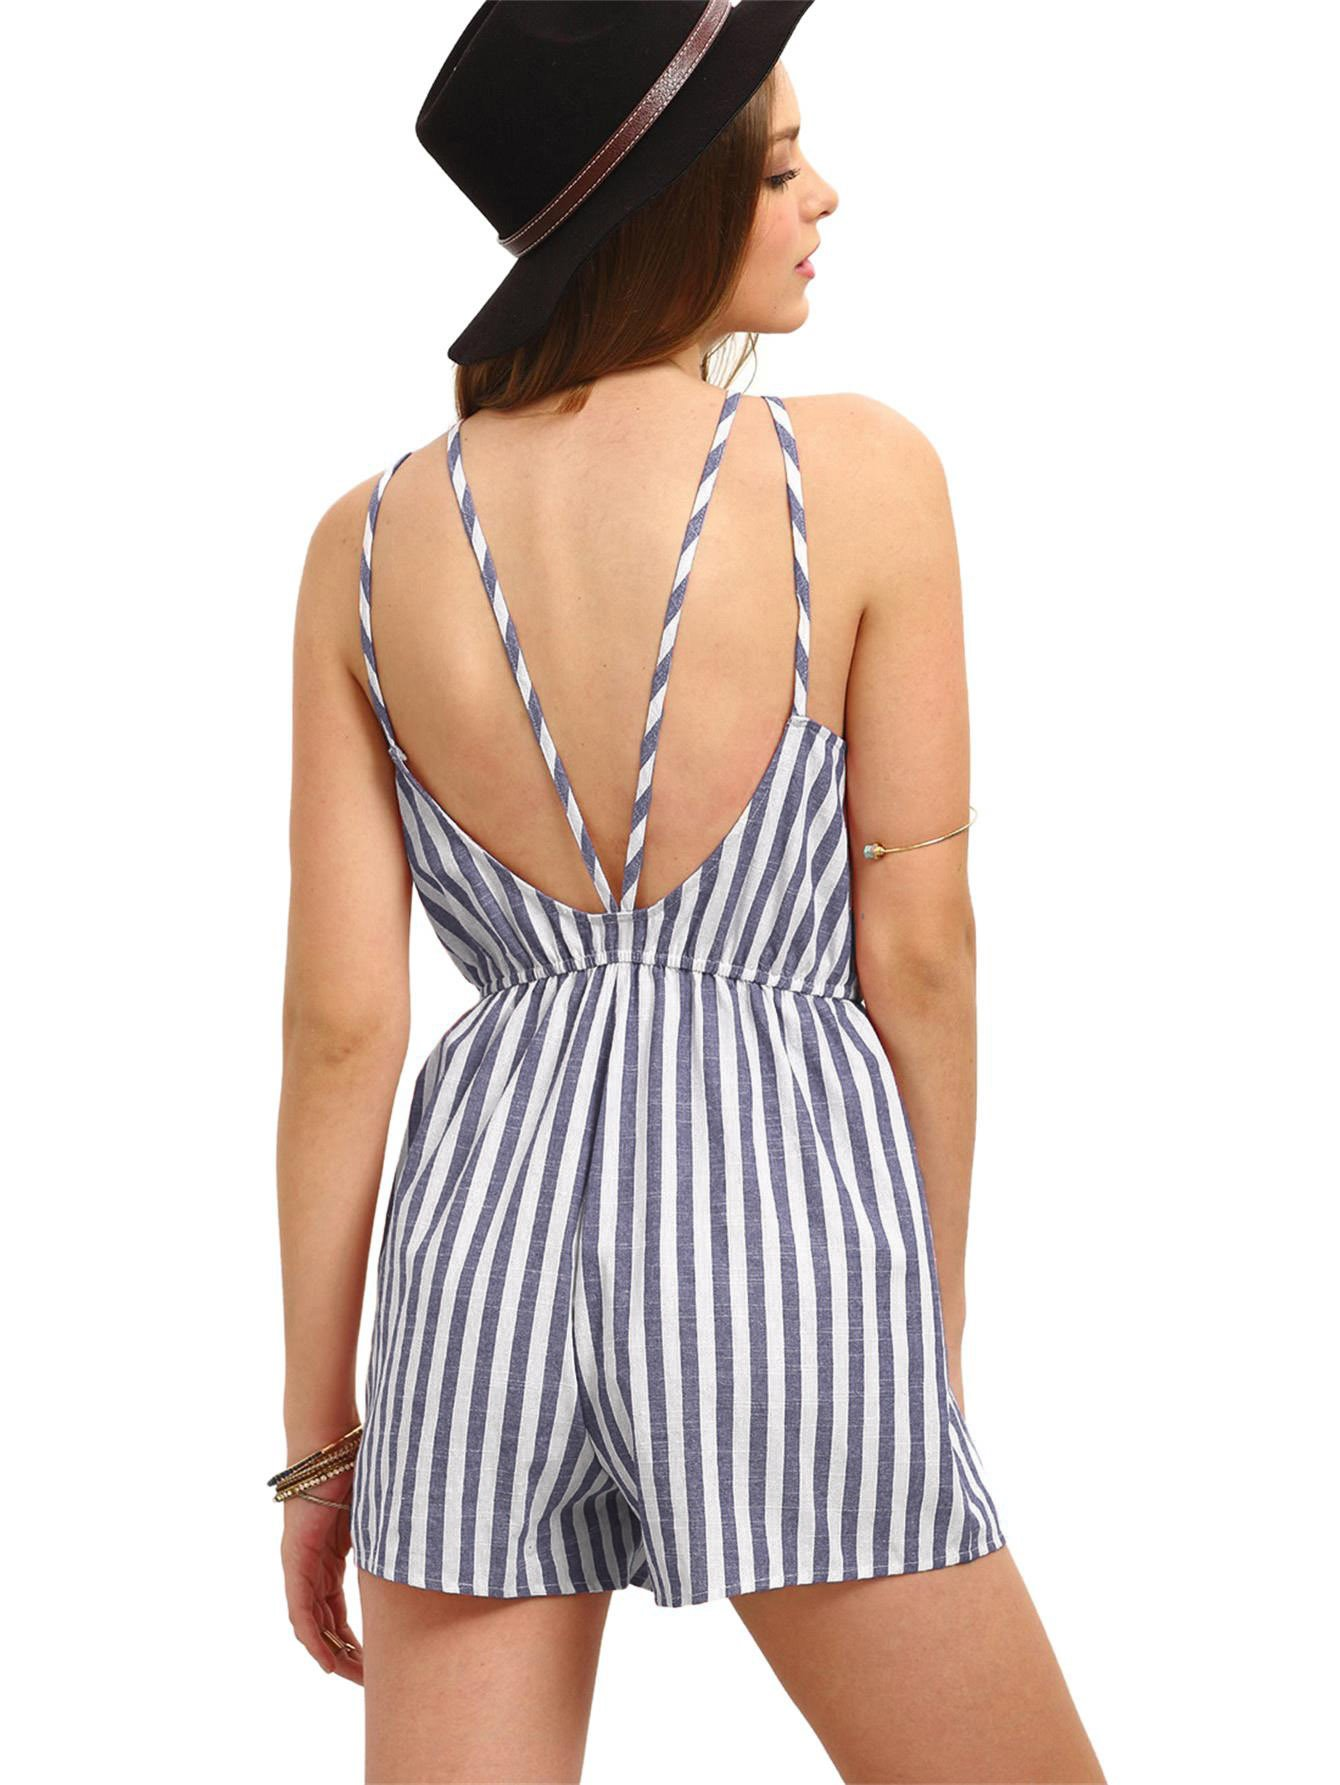 Romwe Women's Casual Striped Sleeveless Halter Sexy Short Romper Jumpsuit Navy XS by Romwe (Image #4)